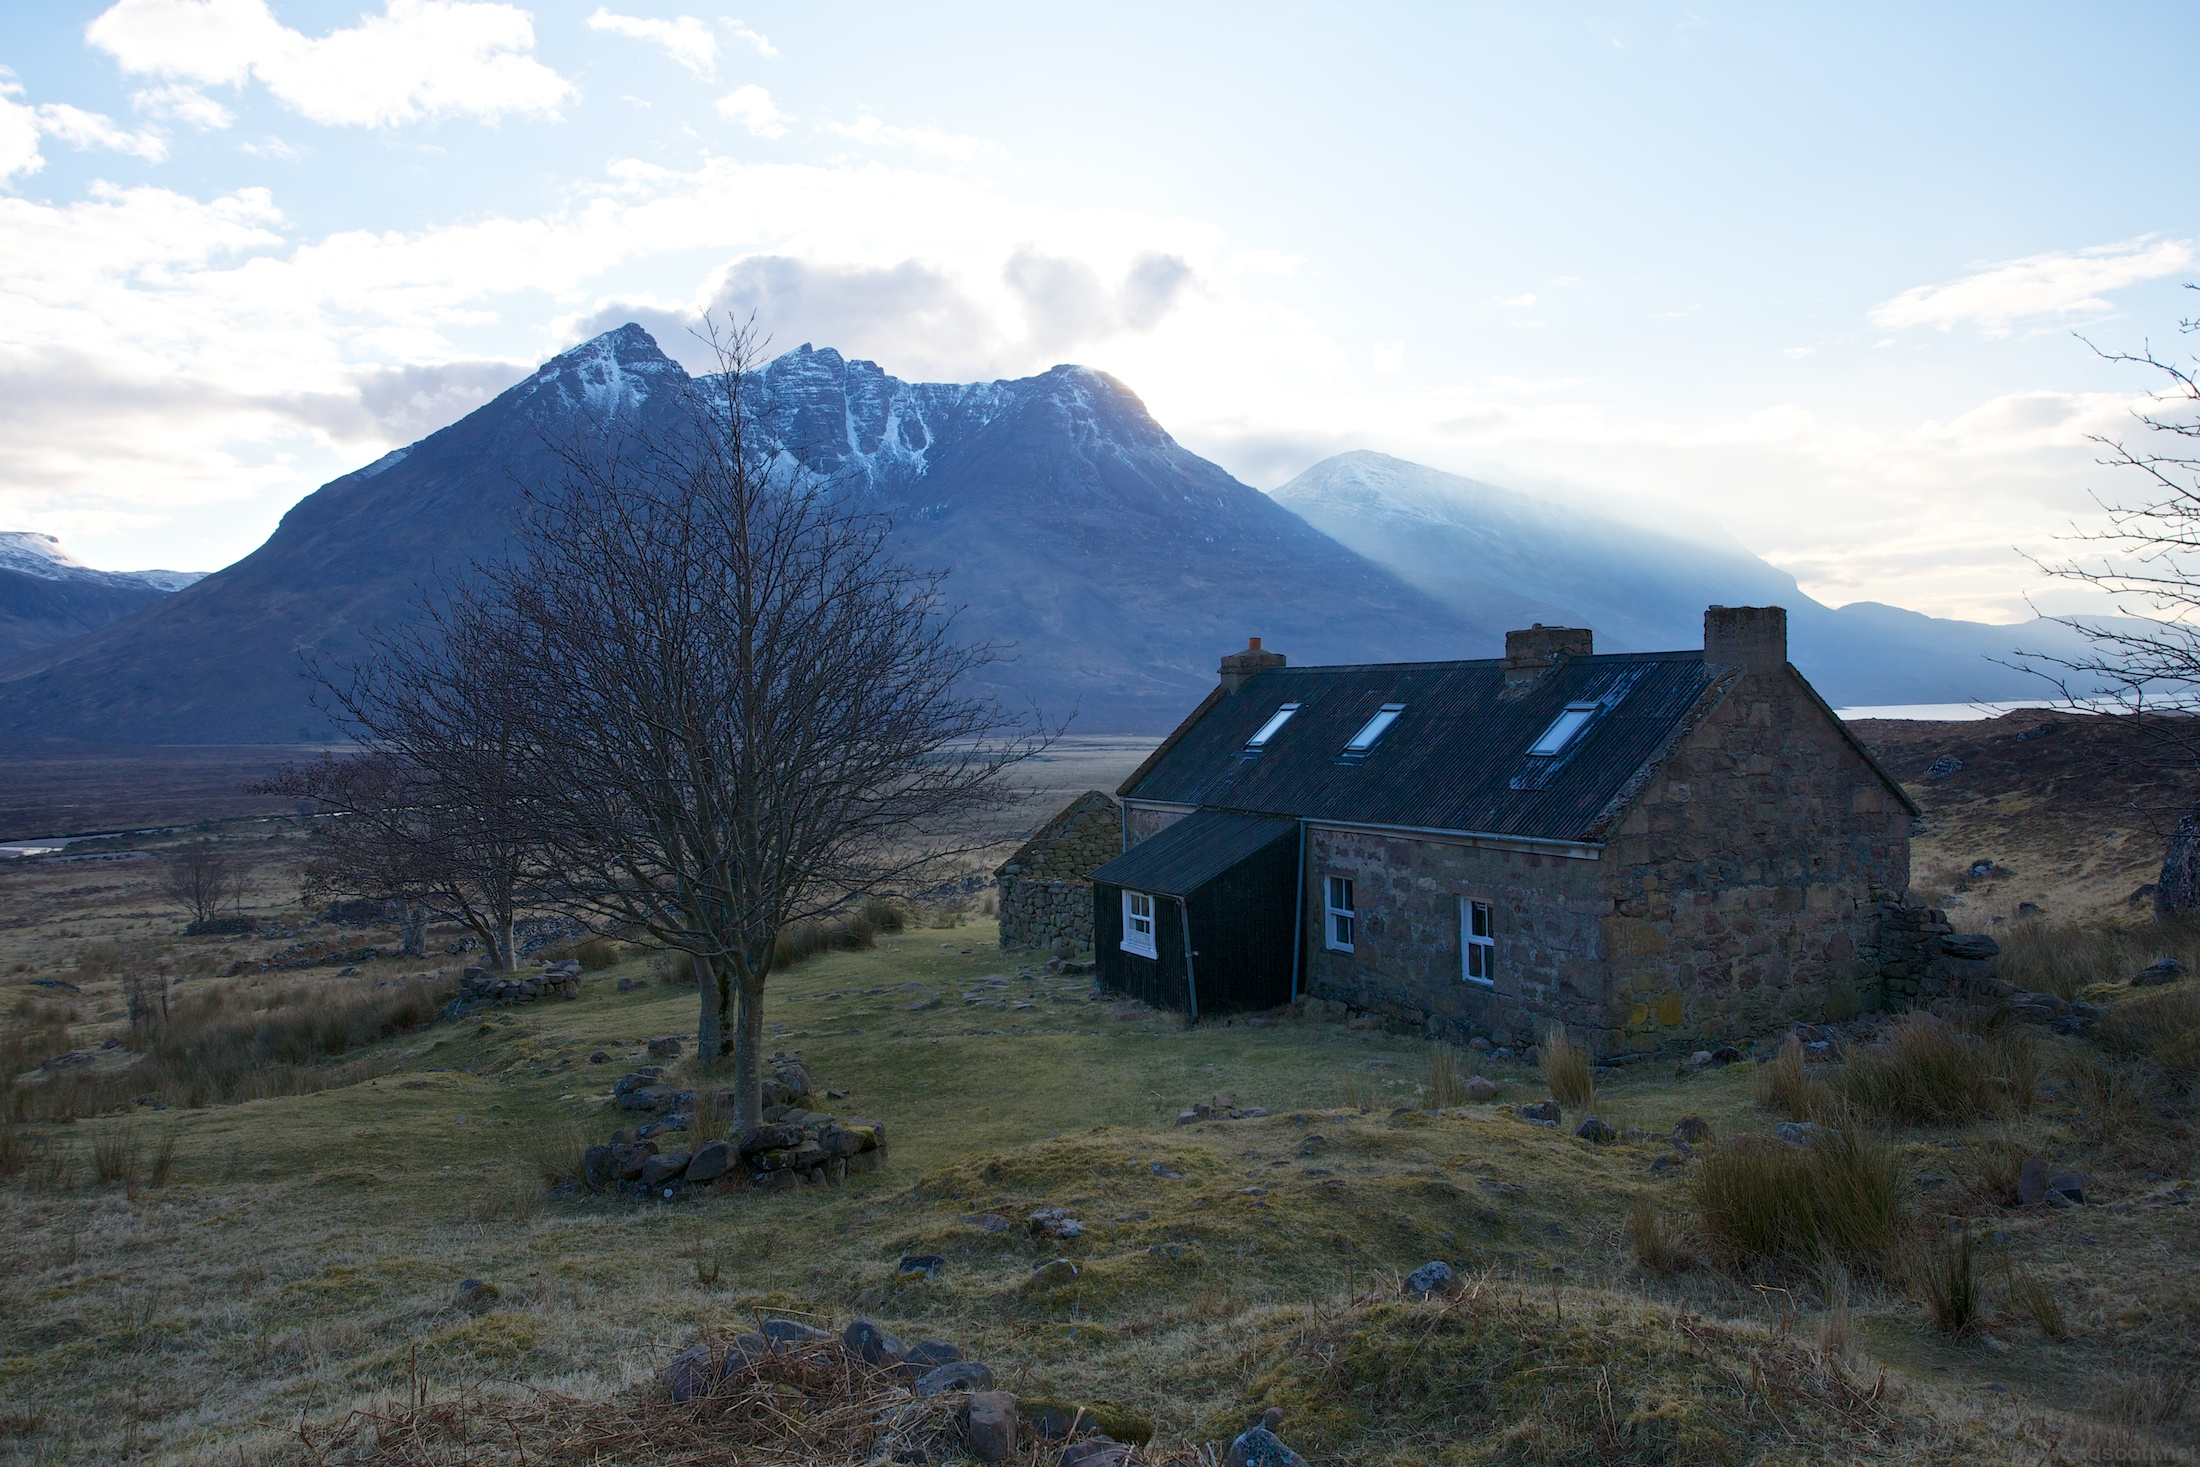 Shenavall Bothy. Facilities: roof, fireplace, spade, nearby stream. Location: priceless.